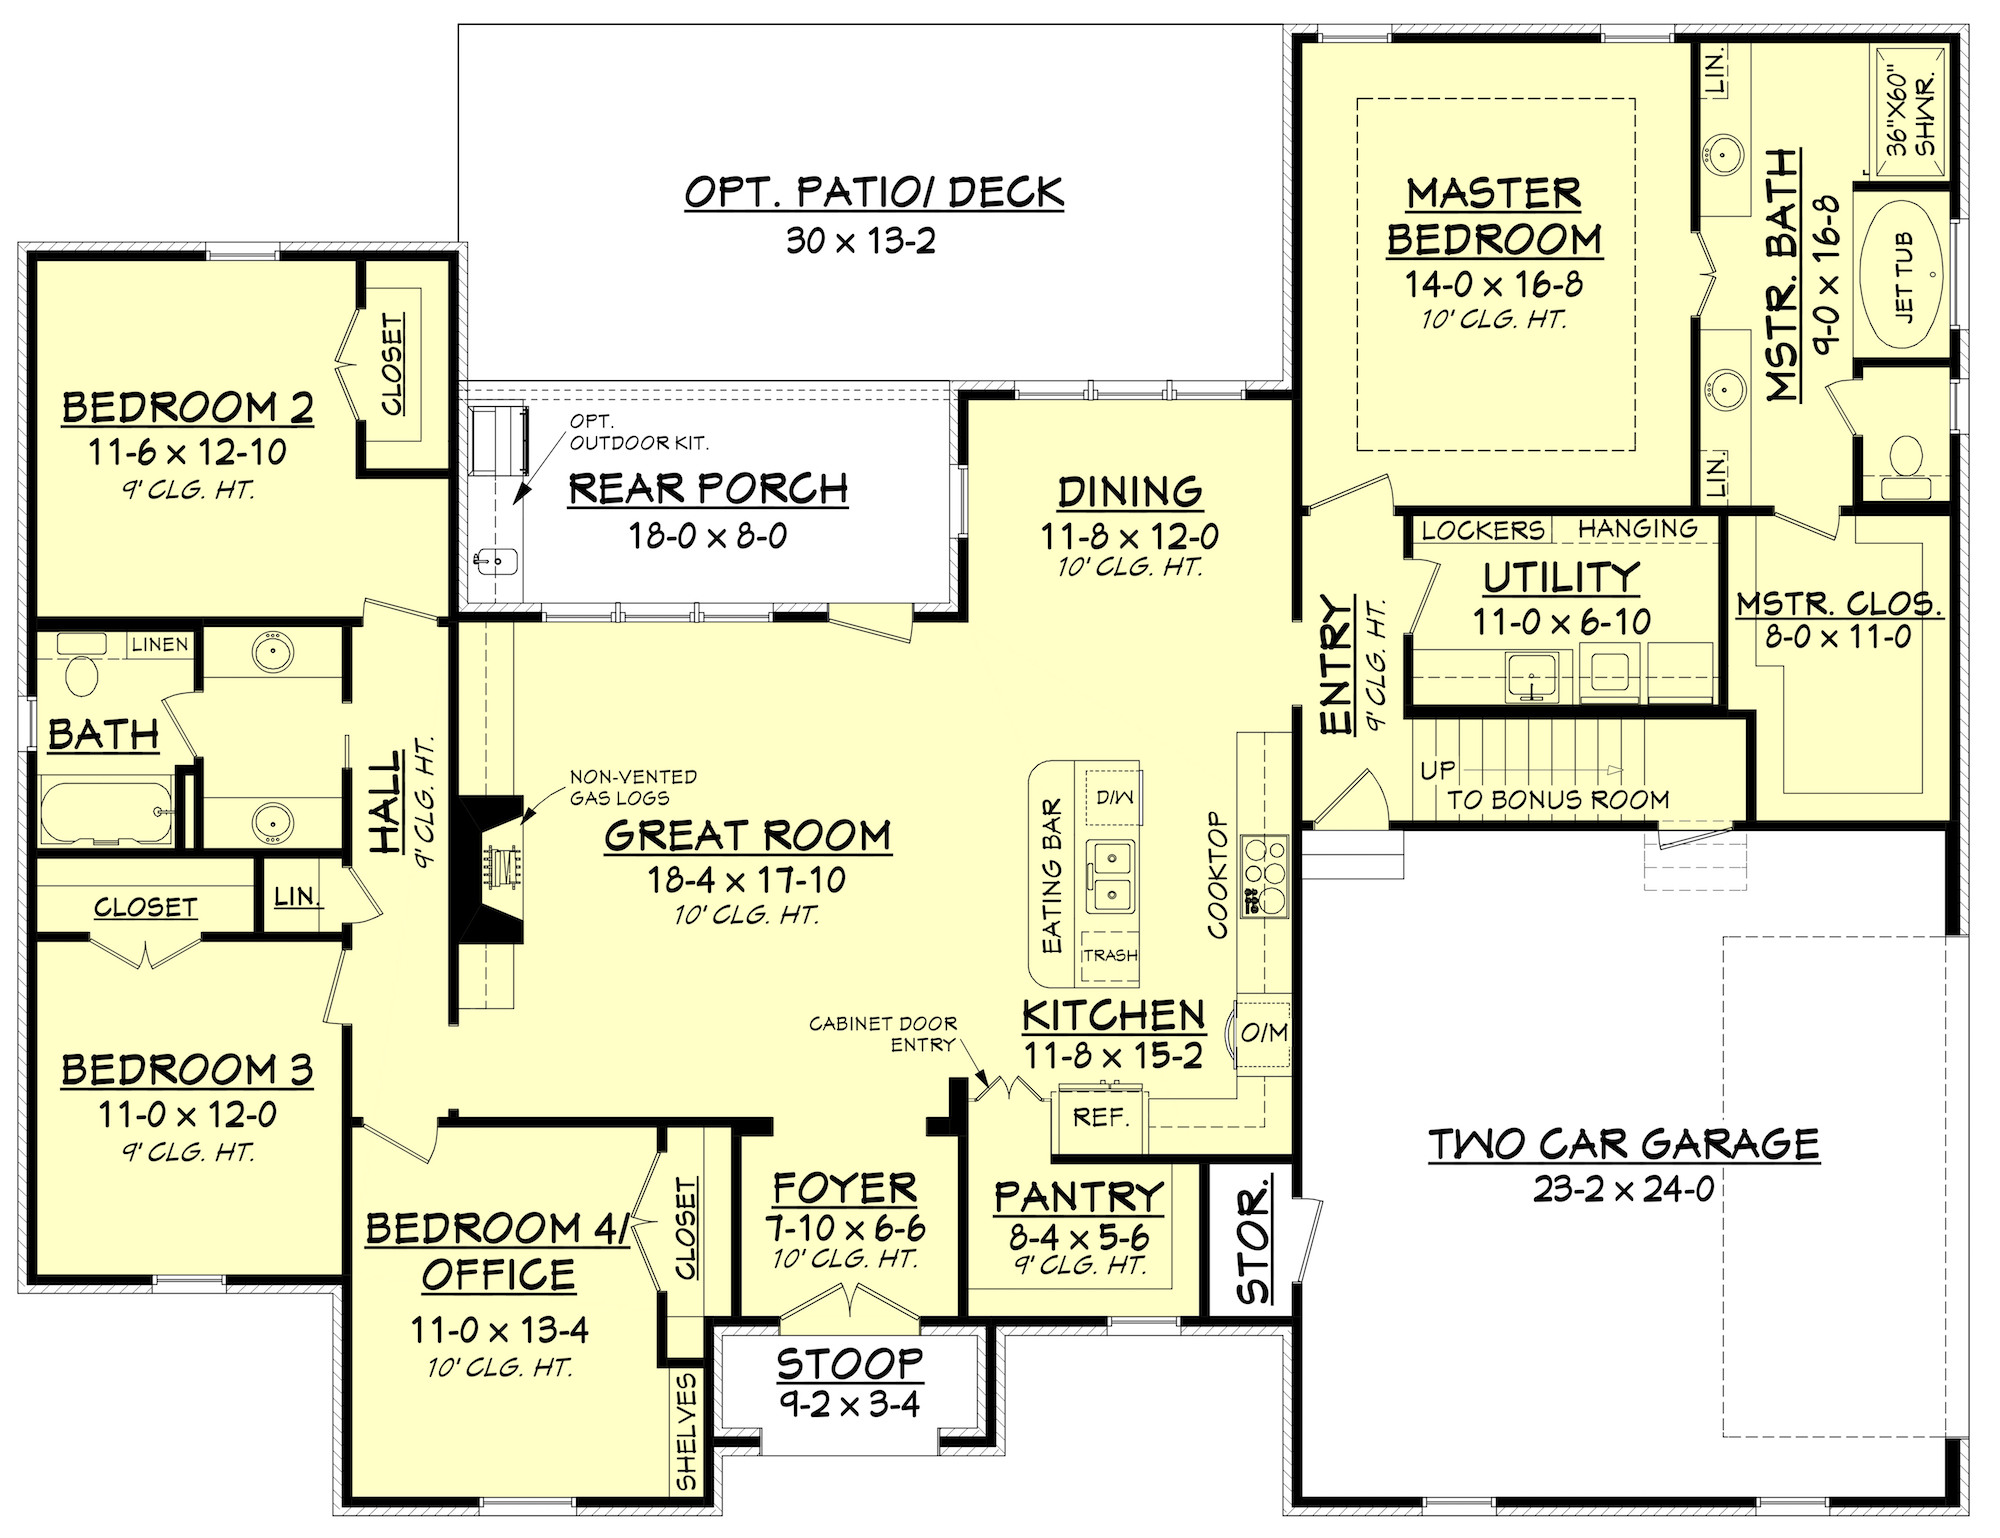 Acadian house plan 142 1154 4 bedrm 2210 sq ft home plan for Floor plans with photos